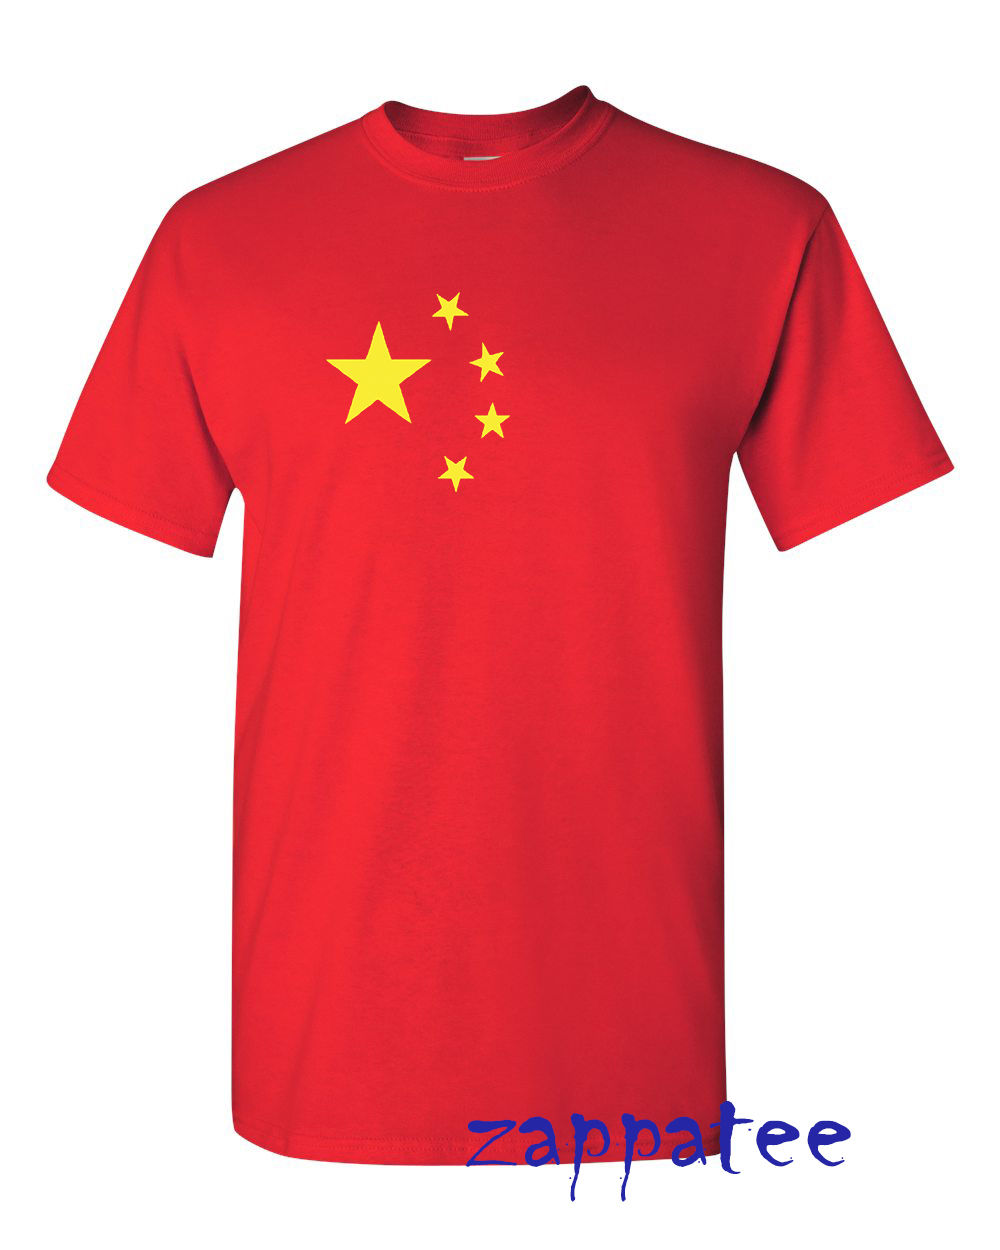 China T Shirt Red with yellow stars as on the People 39 s Republic of China flag New T Shirts Funny Tops Tee New Unisex Funny Tops in T Shirts from Men 39 s Clothing